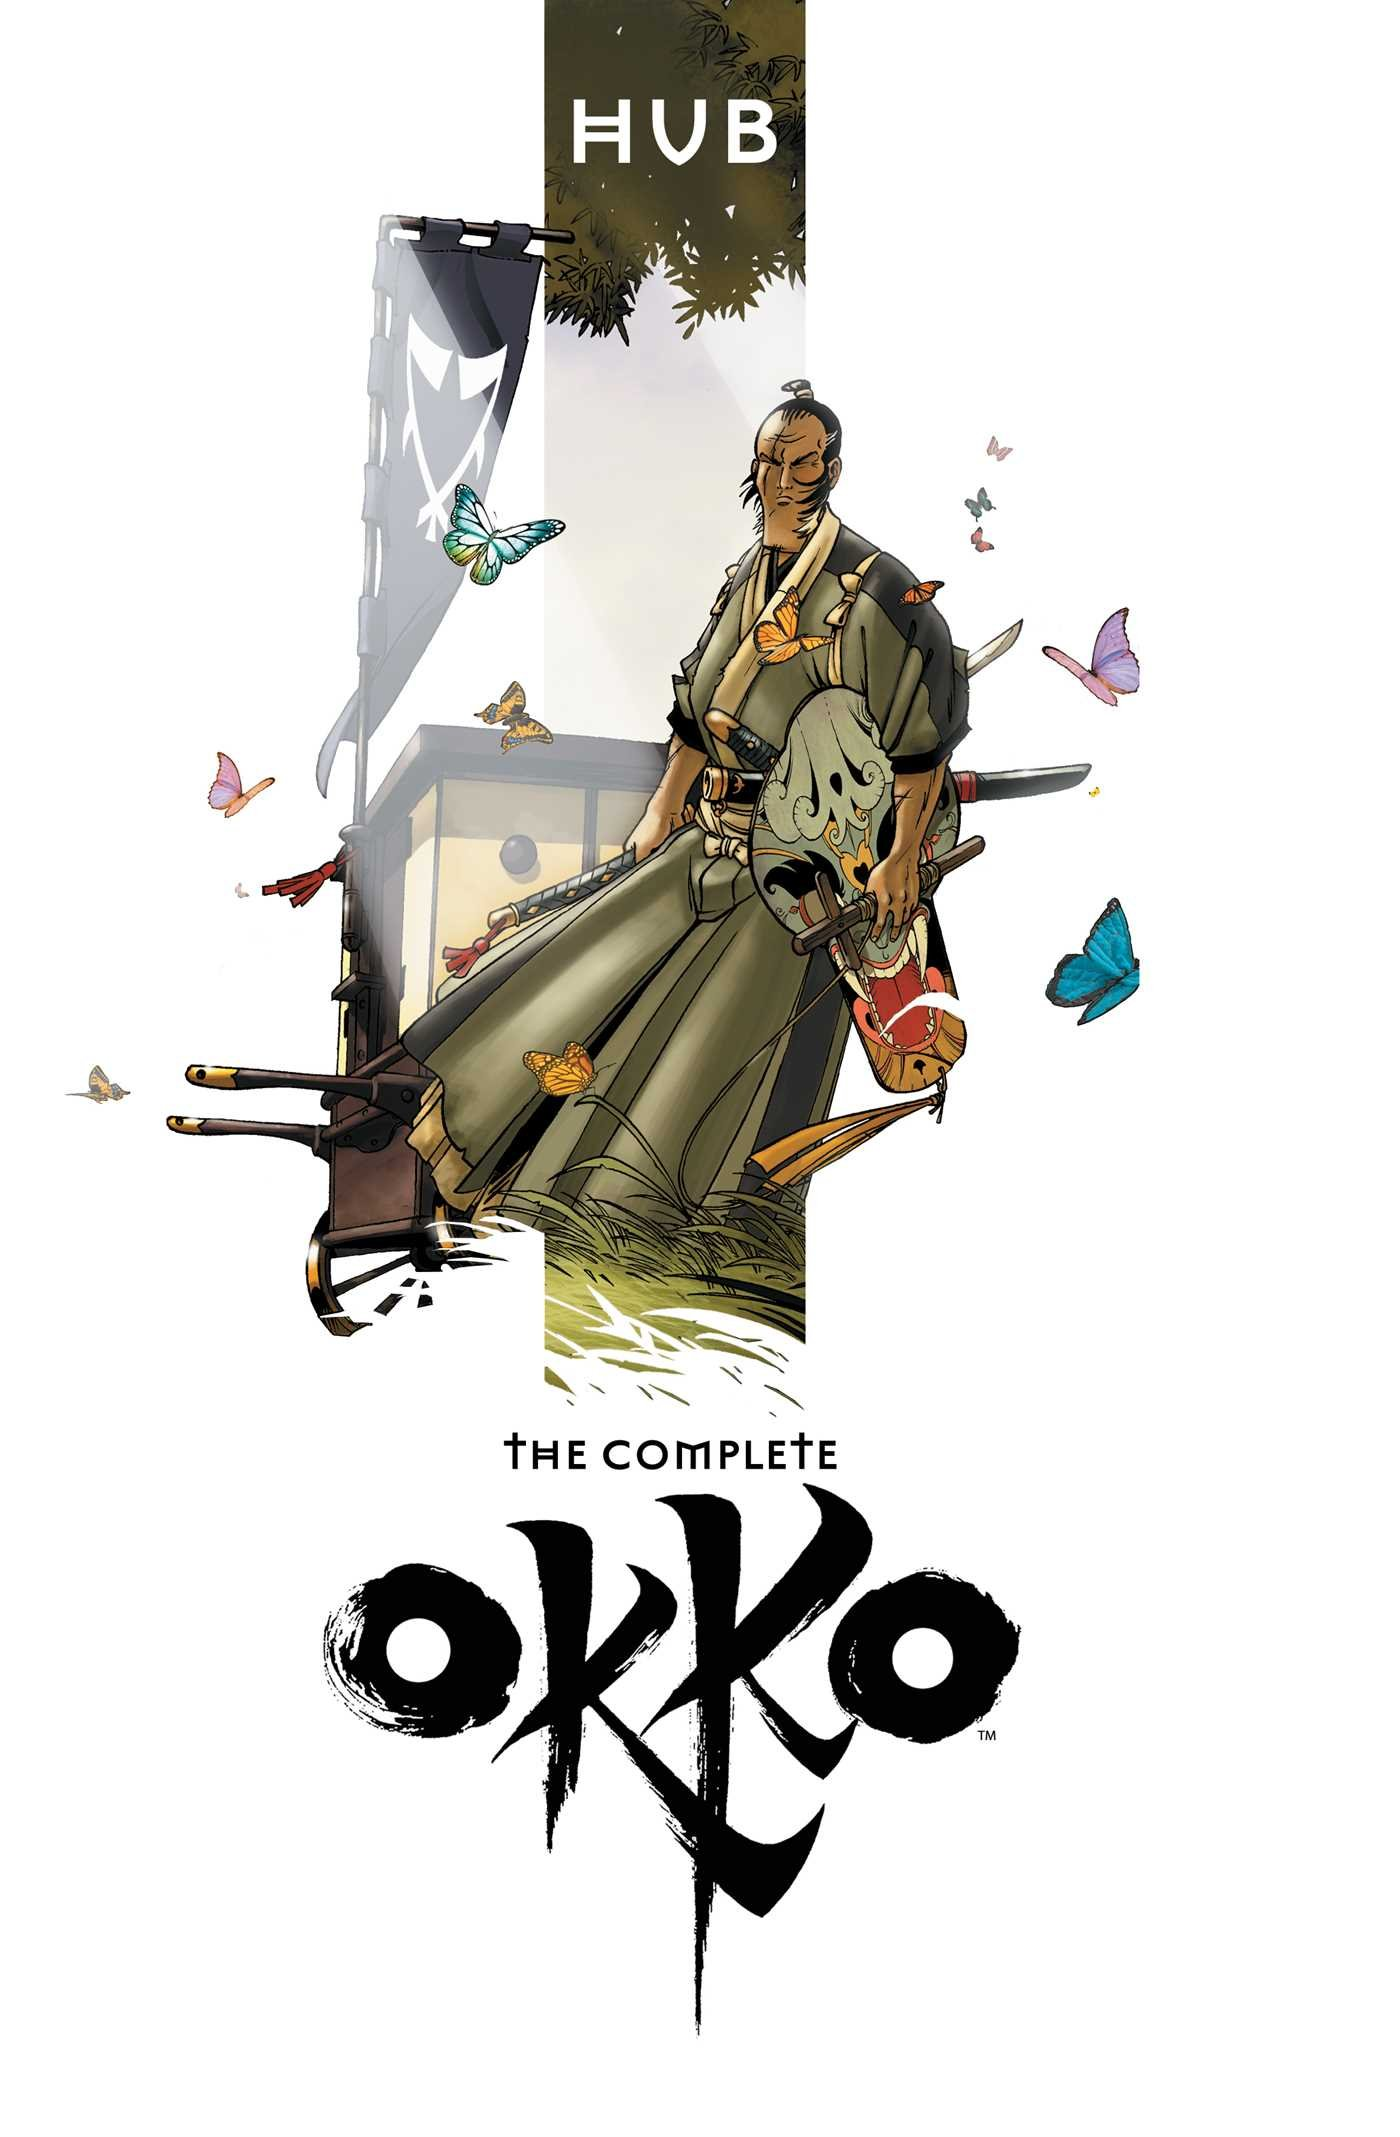 The Complete Okko (1): Hub: 9781684150434: Amazon.com: Books